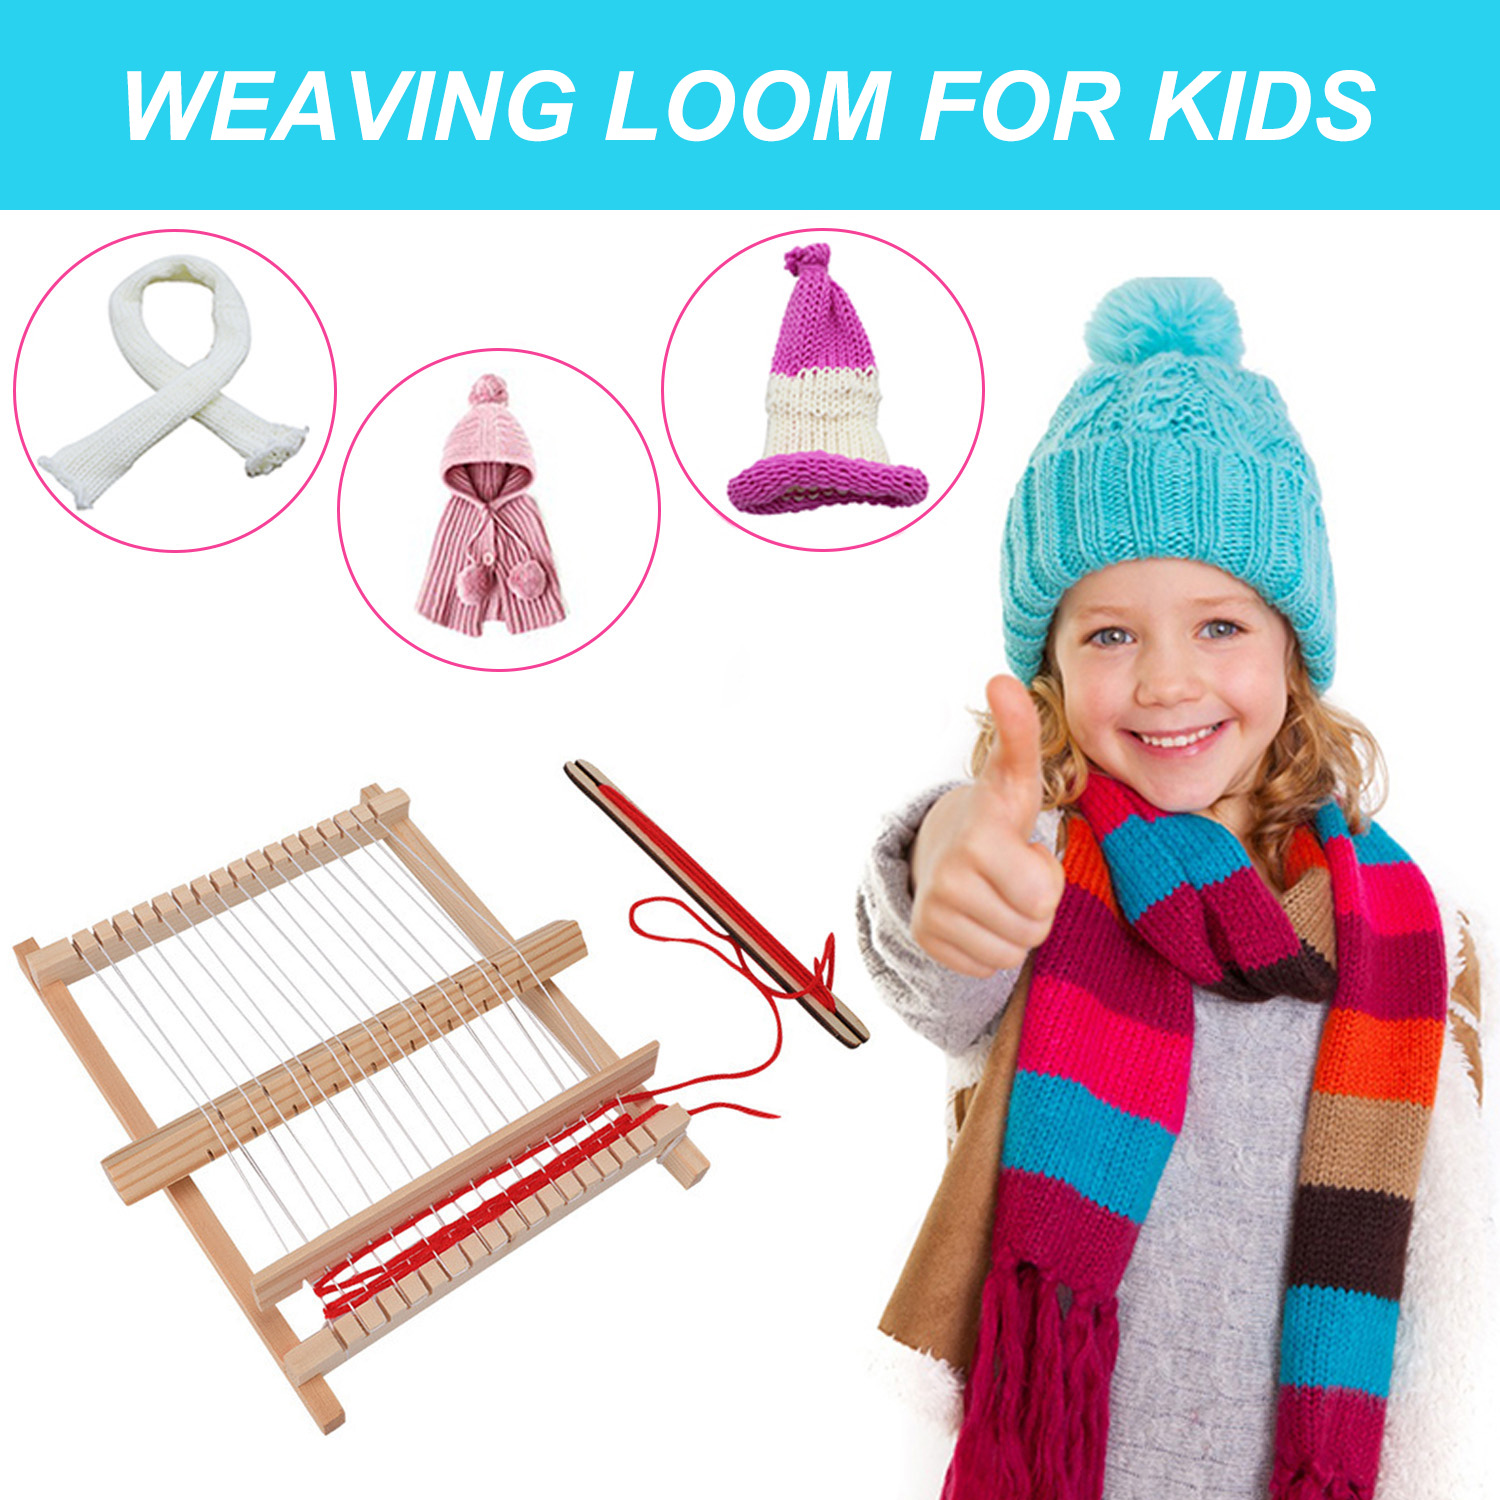 Wooden Weaving Loom Frame Kit Kids DIY Weaves Crafts Supplies Educational Toys For Children Toddler Gifts